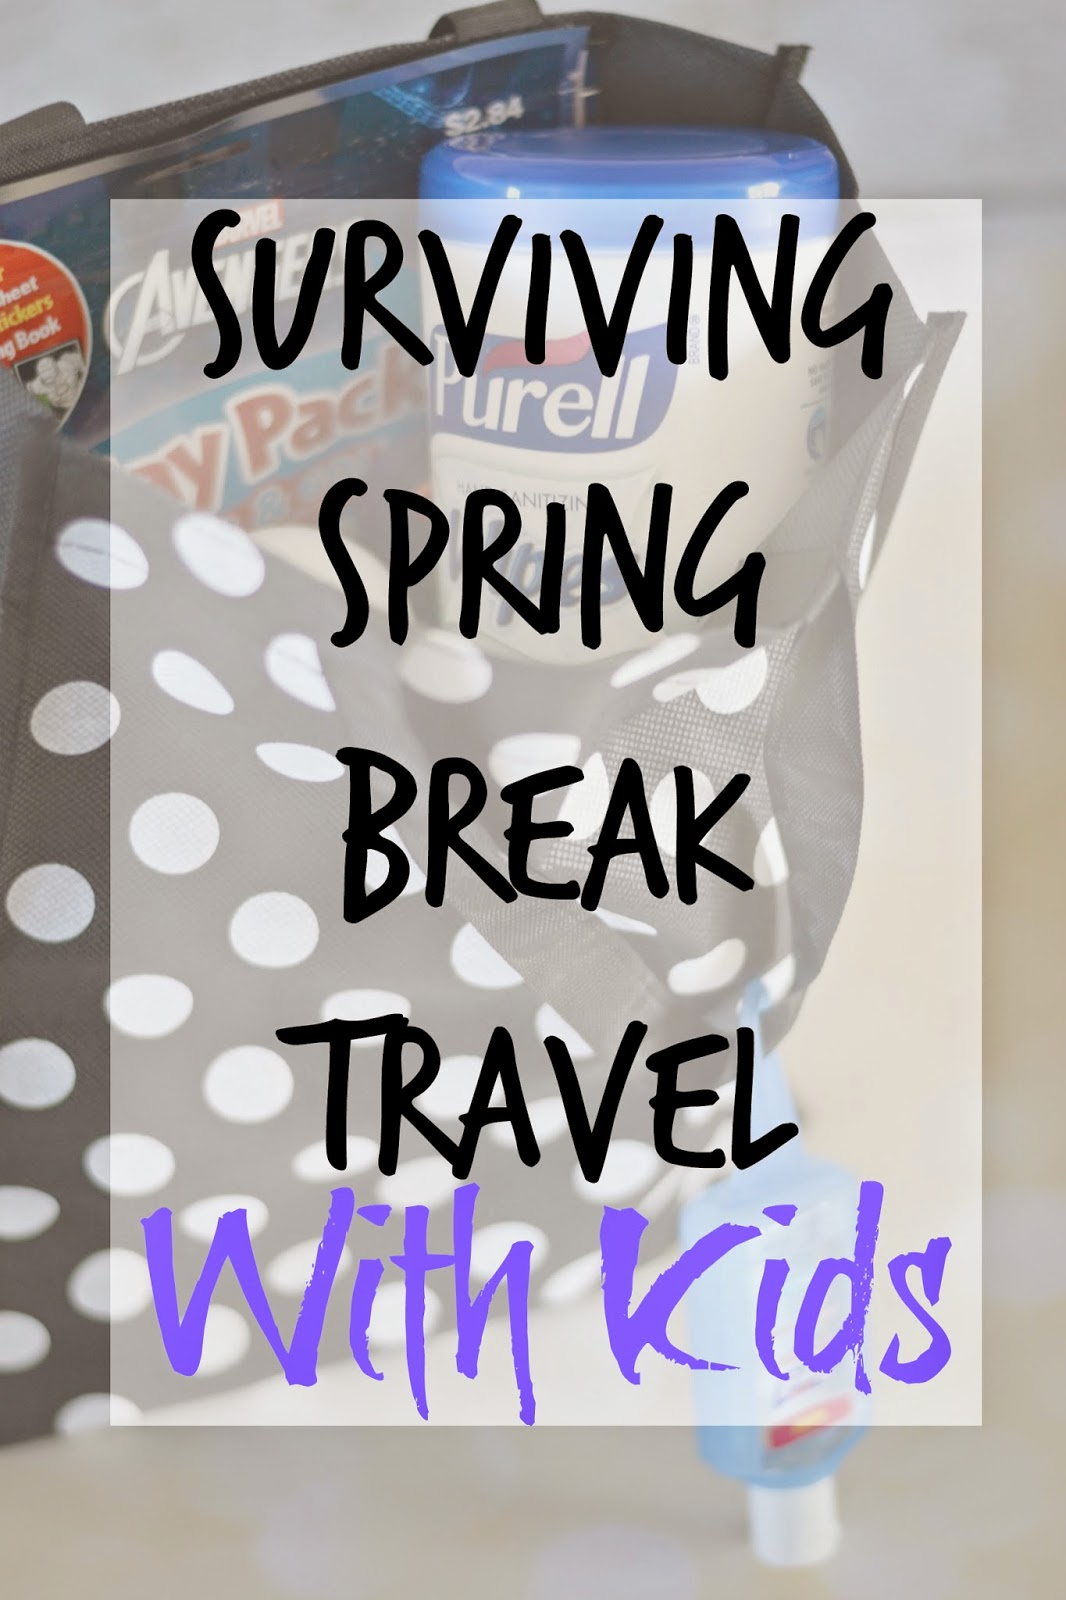 family, hands, face, Purell, travel tips with kids, keeping kids clean while on vacation, Family Spring Break Traveling Tips